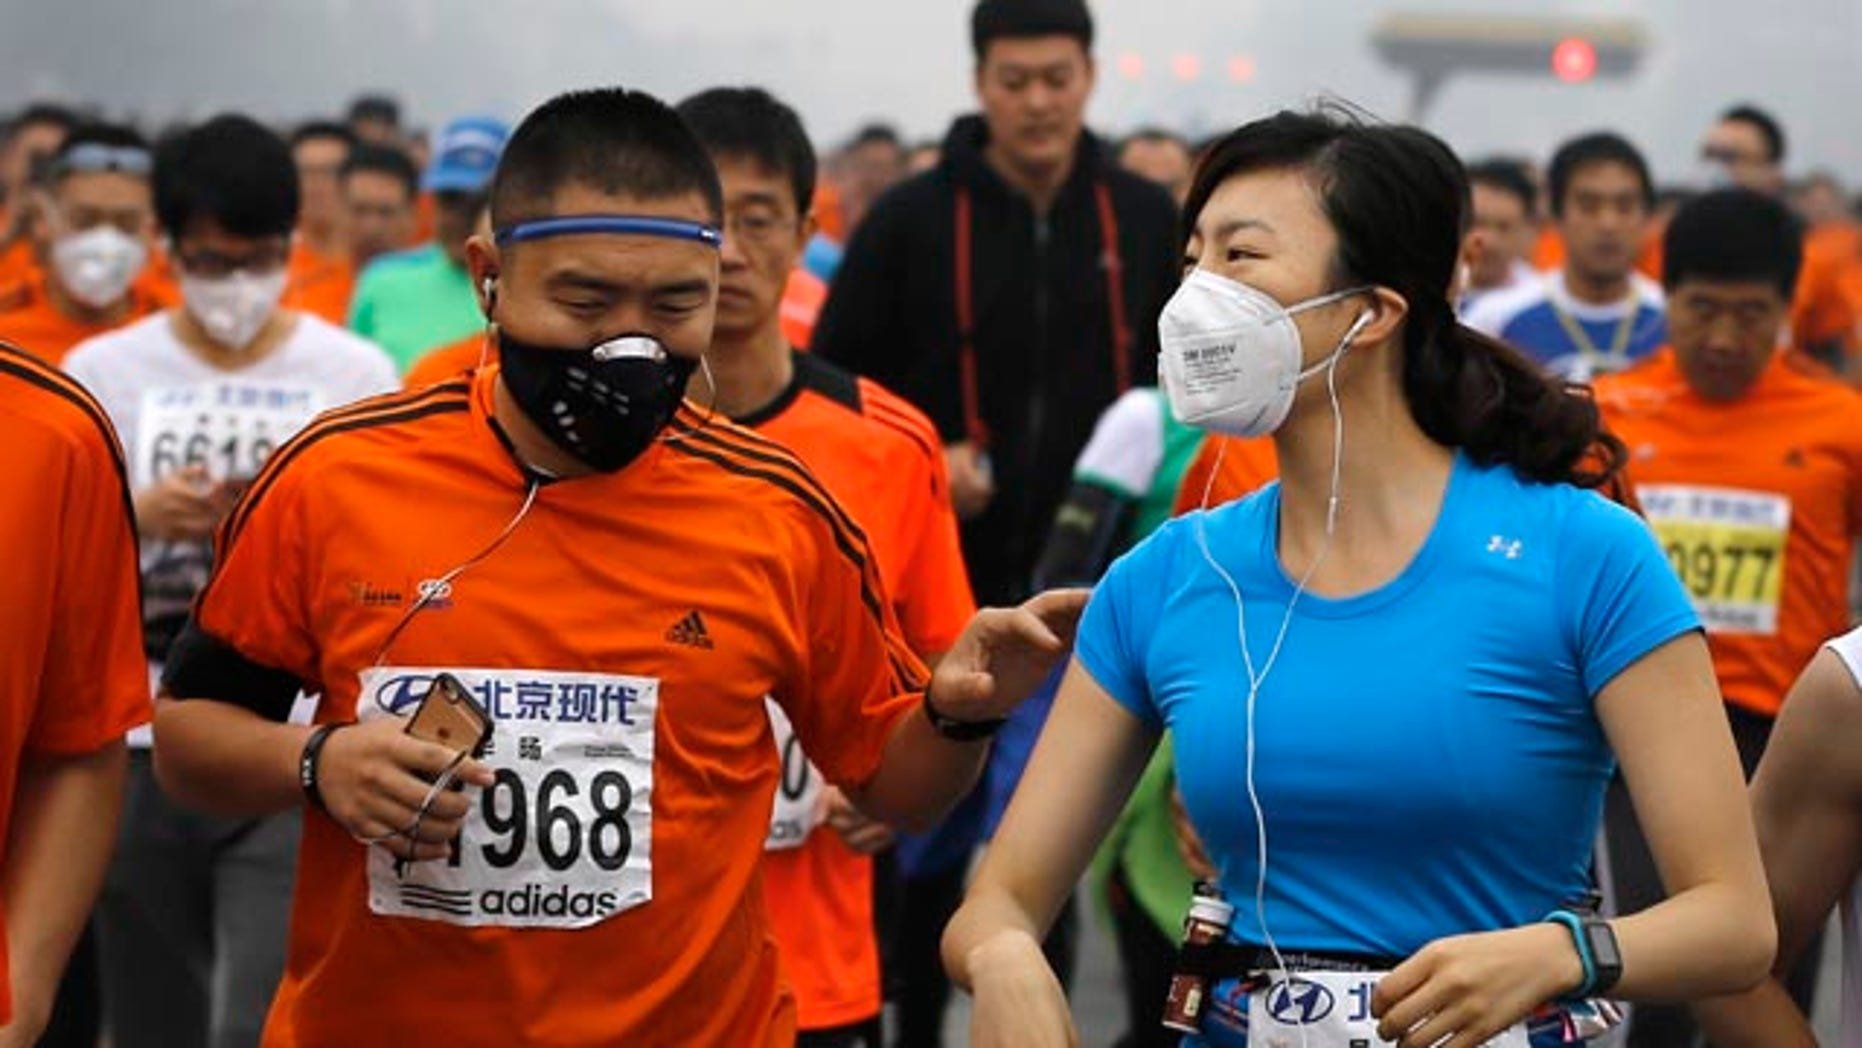 October 19, 2014: Runners wearing masks to protect themselves from pollutants jog past Chang'an Avenue near Tiananmen Square shrouded in haze while taking part in the 2014 Beijing International Marathon. (AP Photo/Andy Wong)